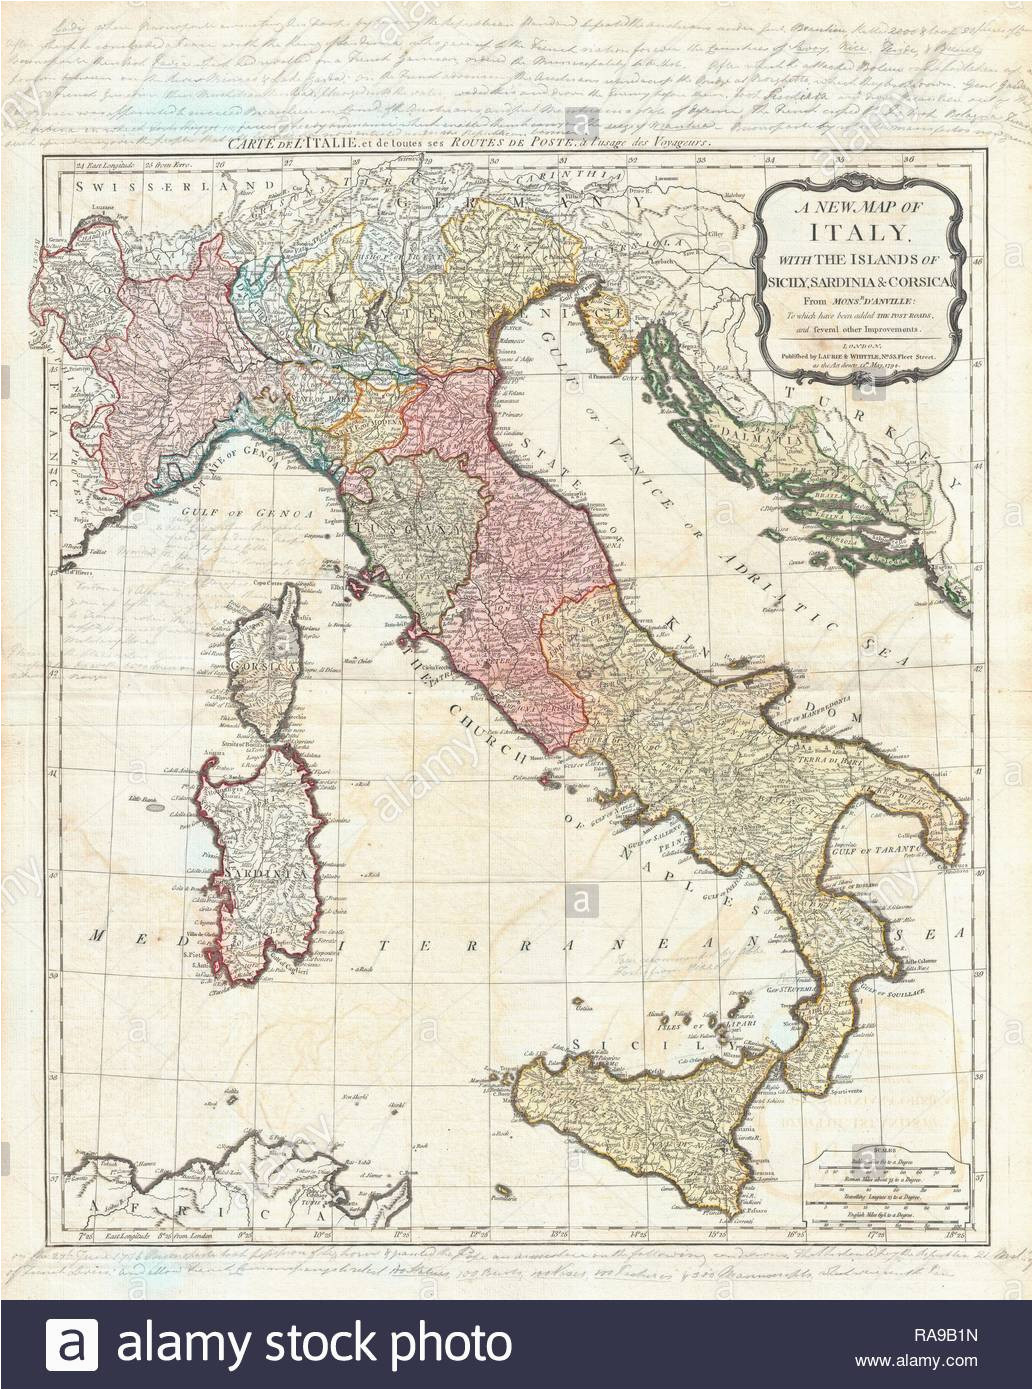 italy map historic stock photos italy map historic stock images